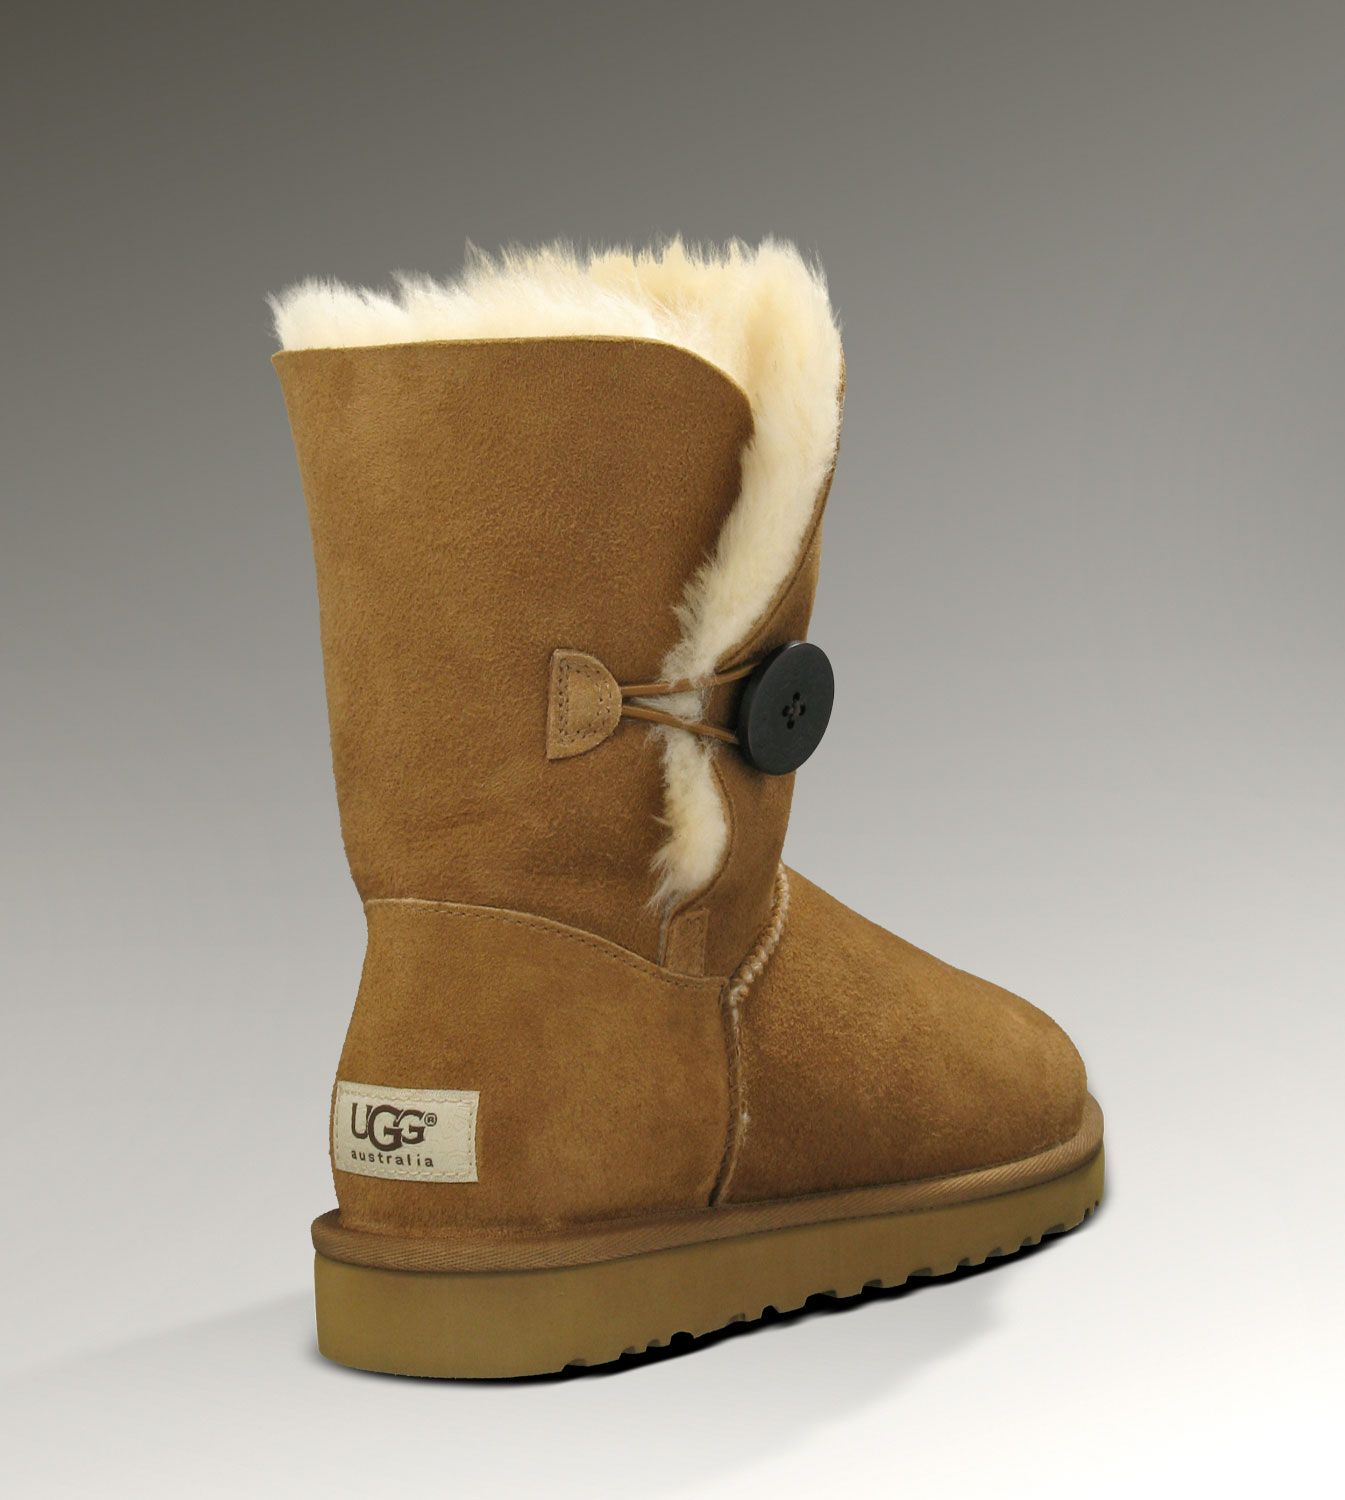 uggs on sale ugg stiefel bailey button boots